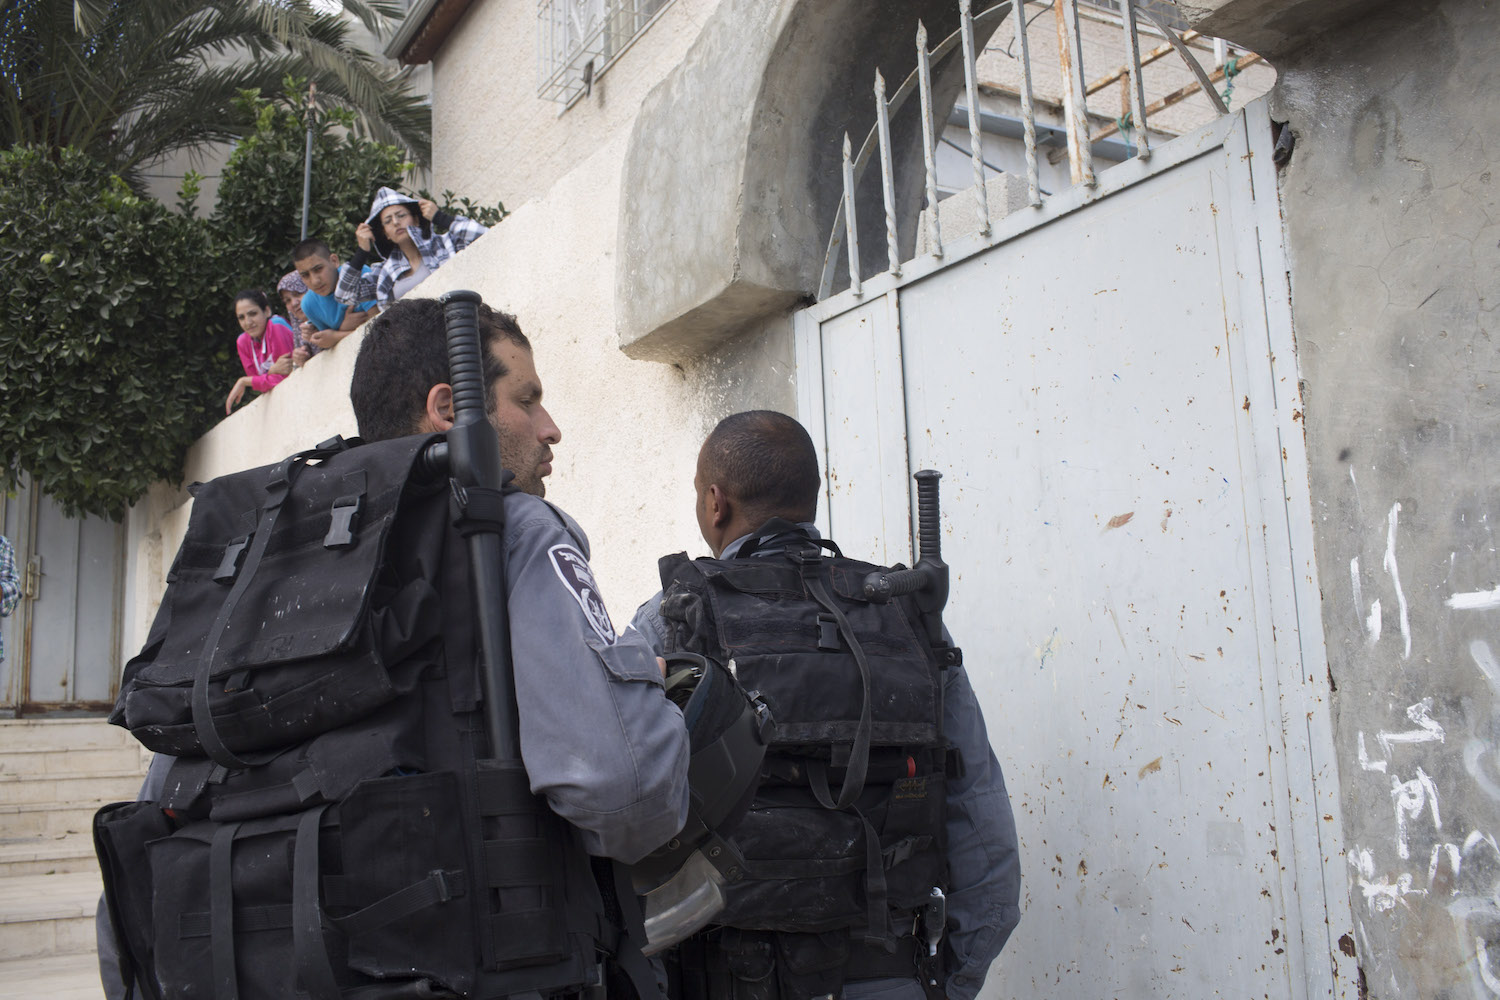 Israeli police officers enter the house of the Hayat family in Silwan neighbourhood in East Jerusalem, after Israeli settlers took over one apartment in the building, September 30, 2014. (Oren Ziv/Activestills.org)